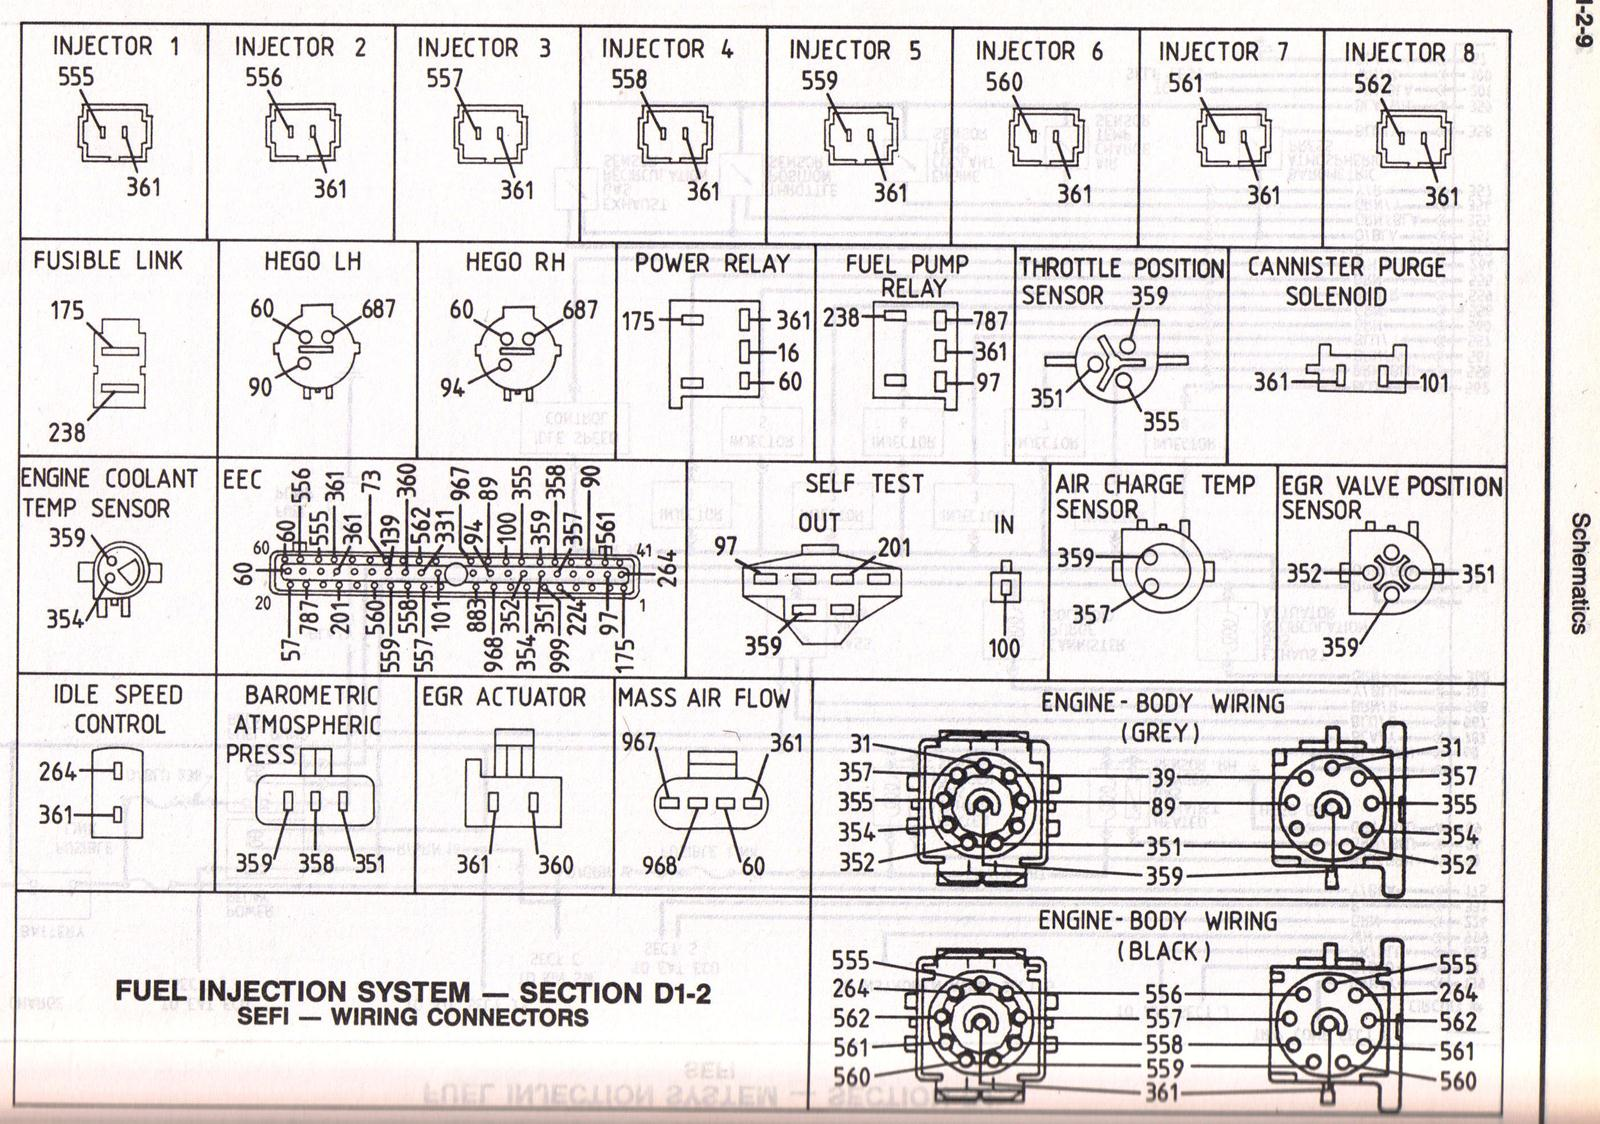 Fader Wiring Diagram 1964 Ford Opinions About Galaxy Alarm Truck Elsalvadorla 1962